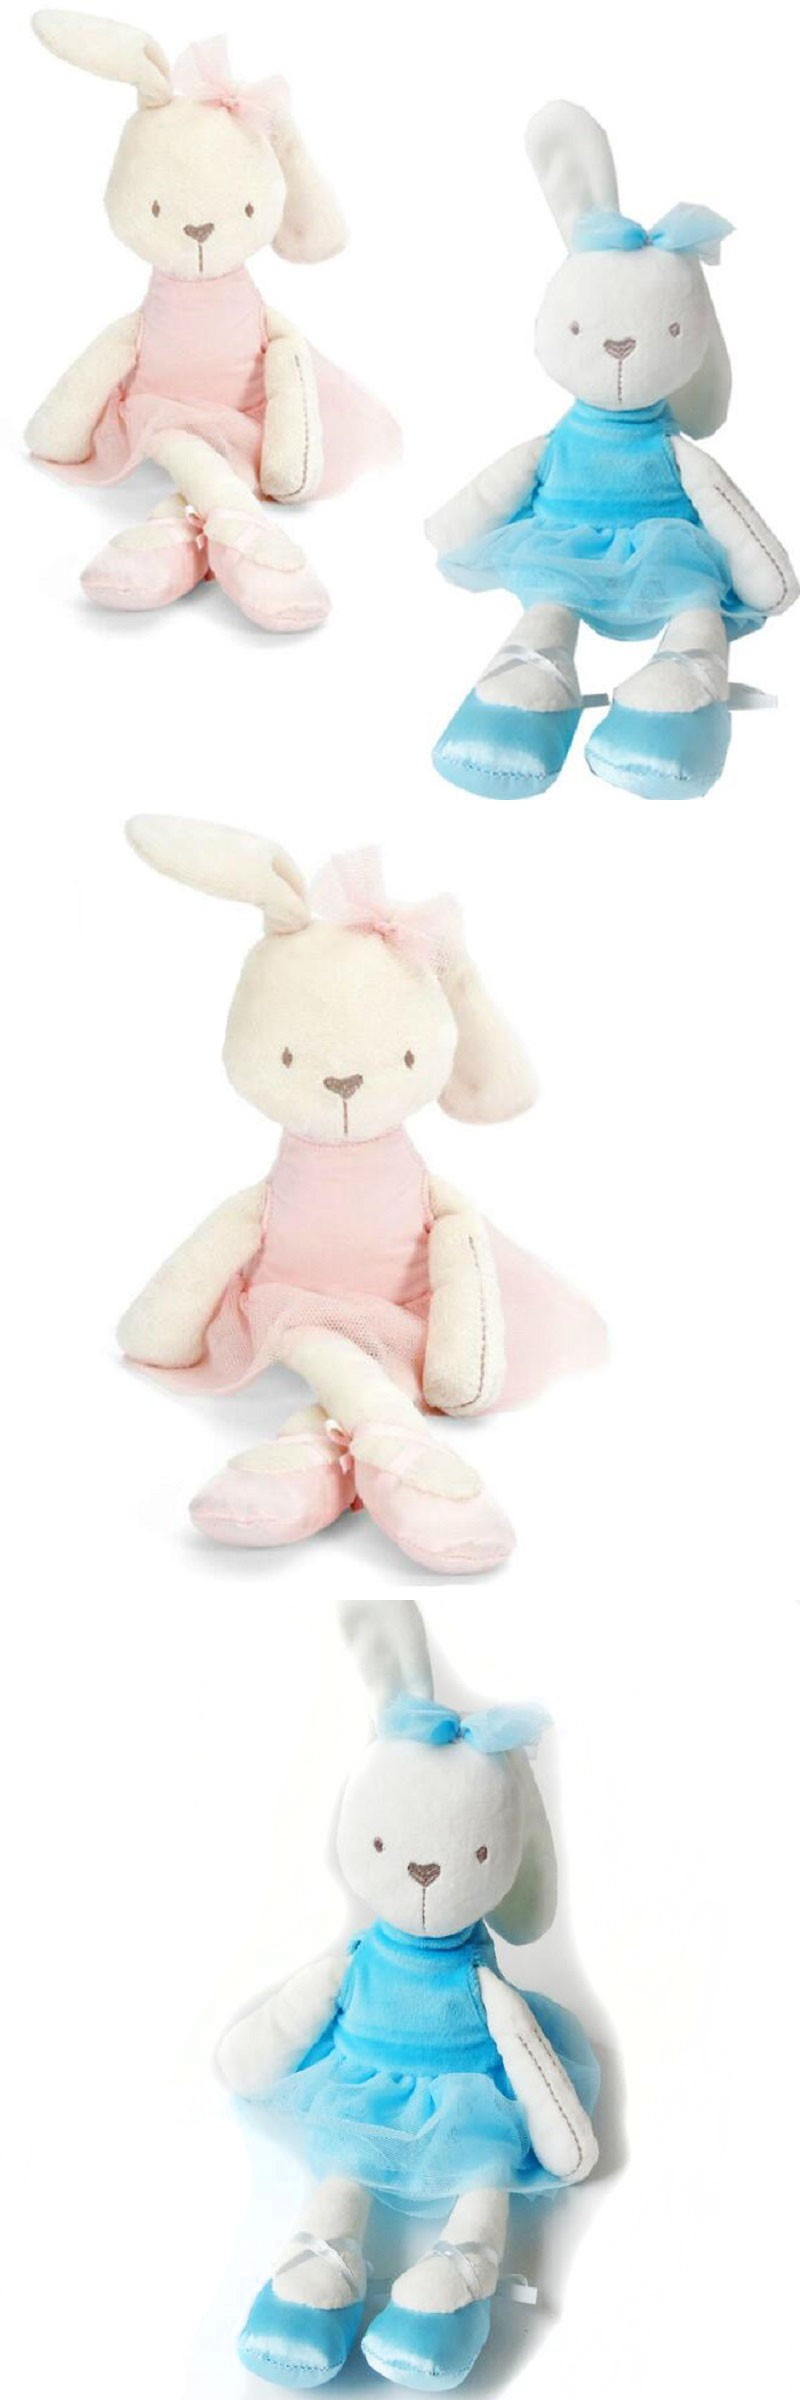 Cute toys images   Month Cute Shape Rabbit Baby Toys Mobile Musical Bed Baby Toy